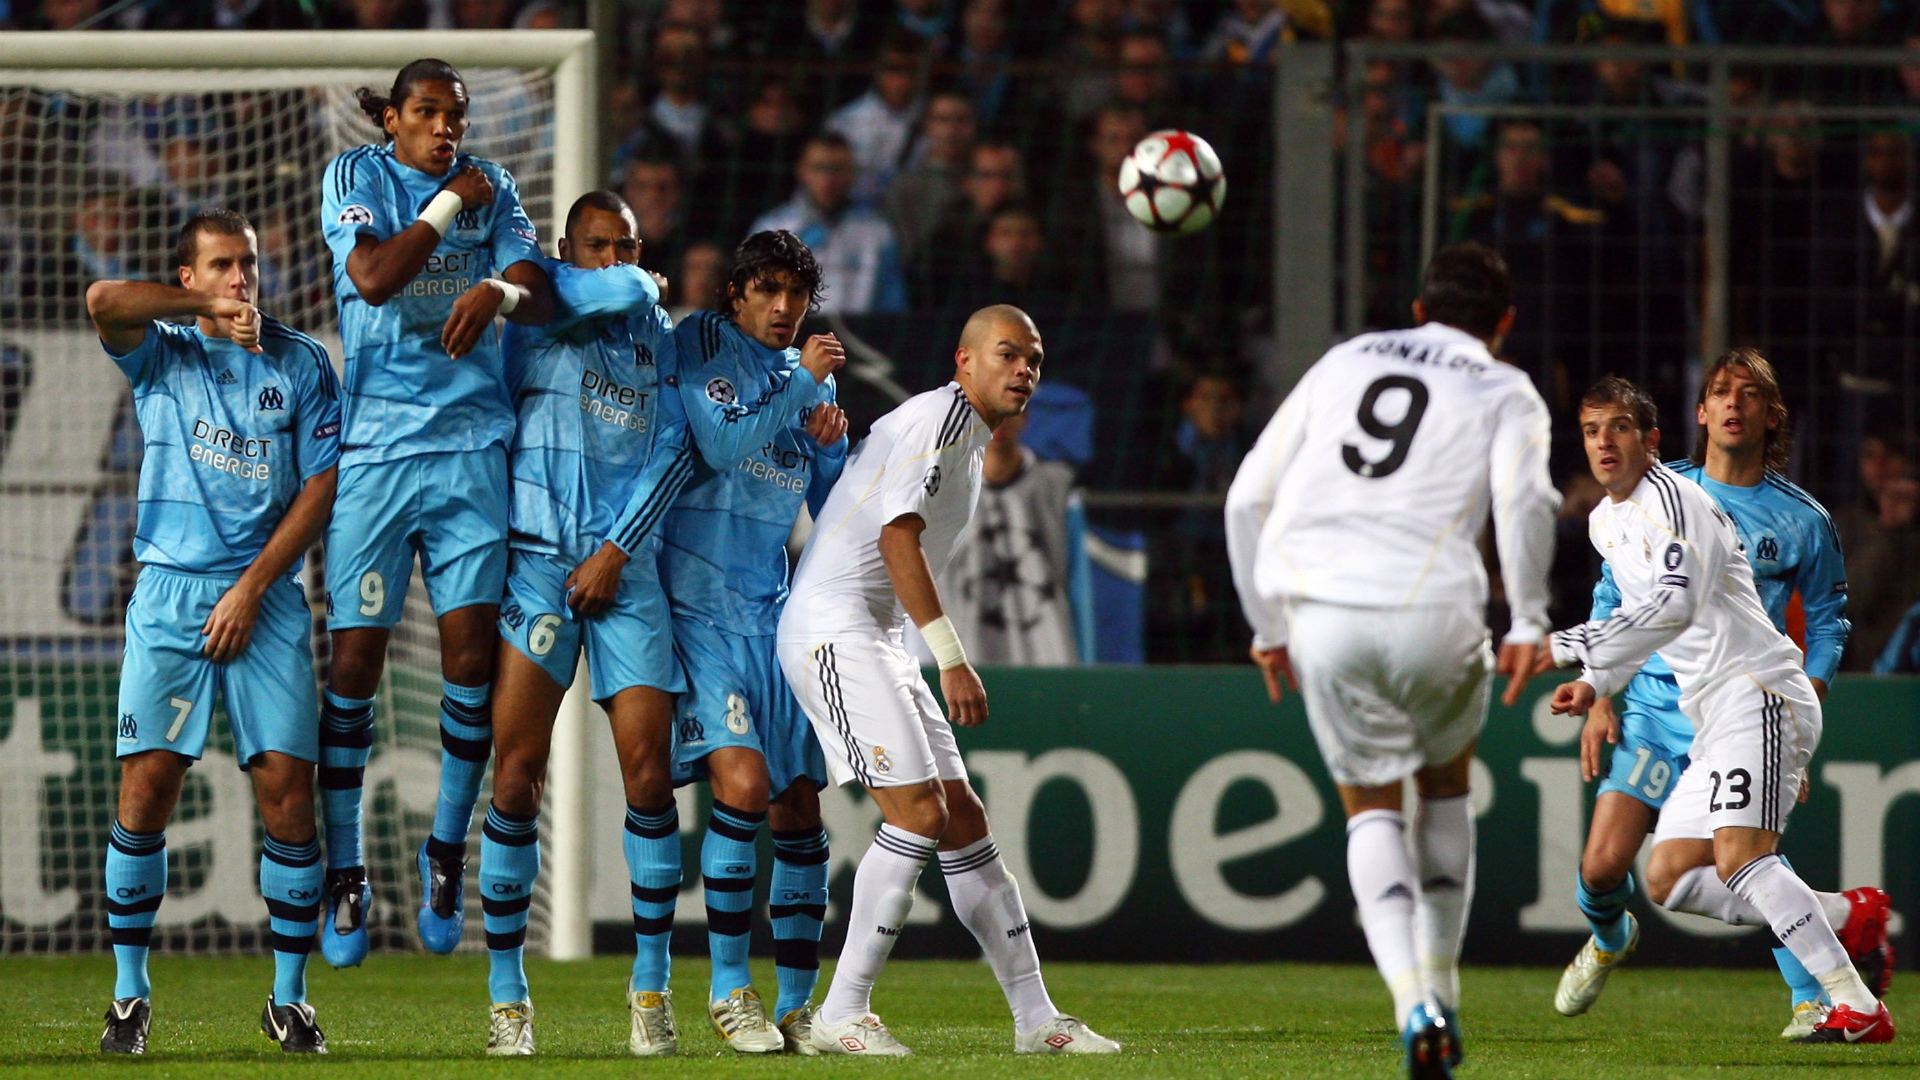 Cristiano Ronaldo Champions League Marseille 2009 away